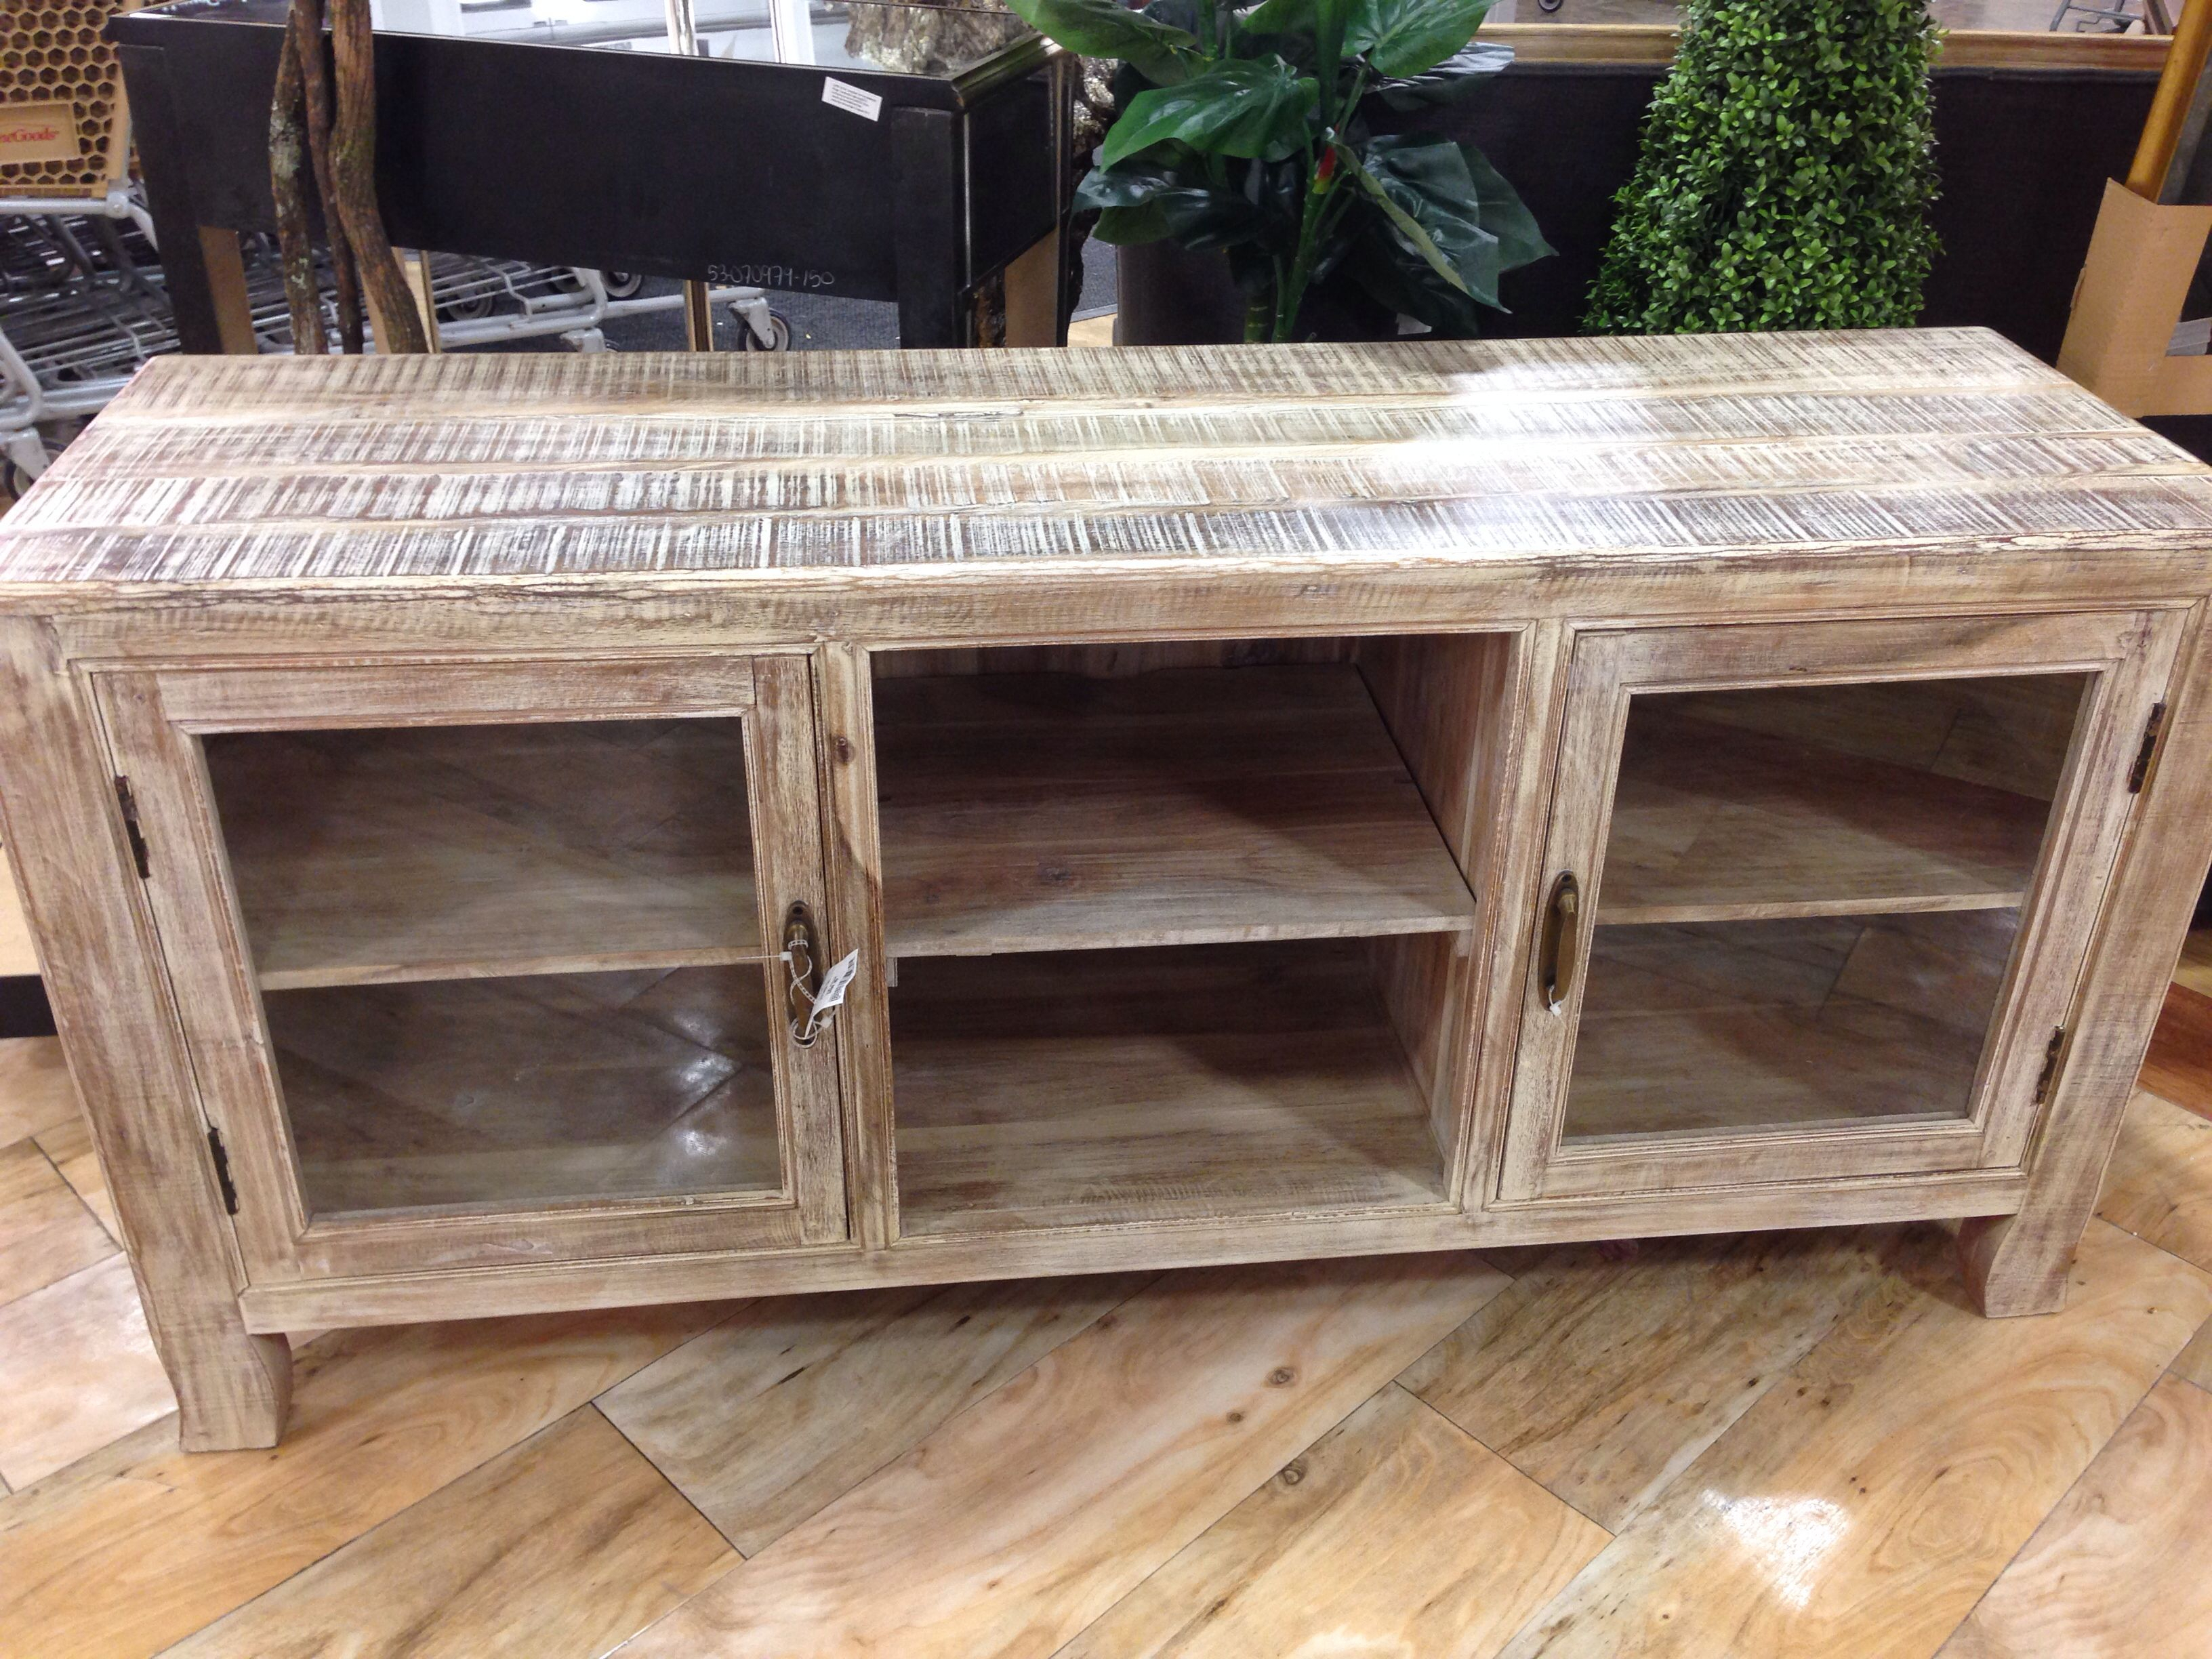 Best Pallet Projects | Pallet Tv Stands & Entertainment Centers for Walters Media Console Tables (Image 6 of 30)